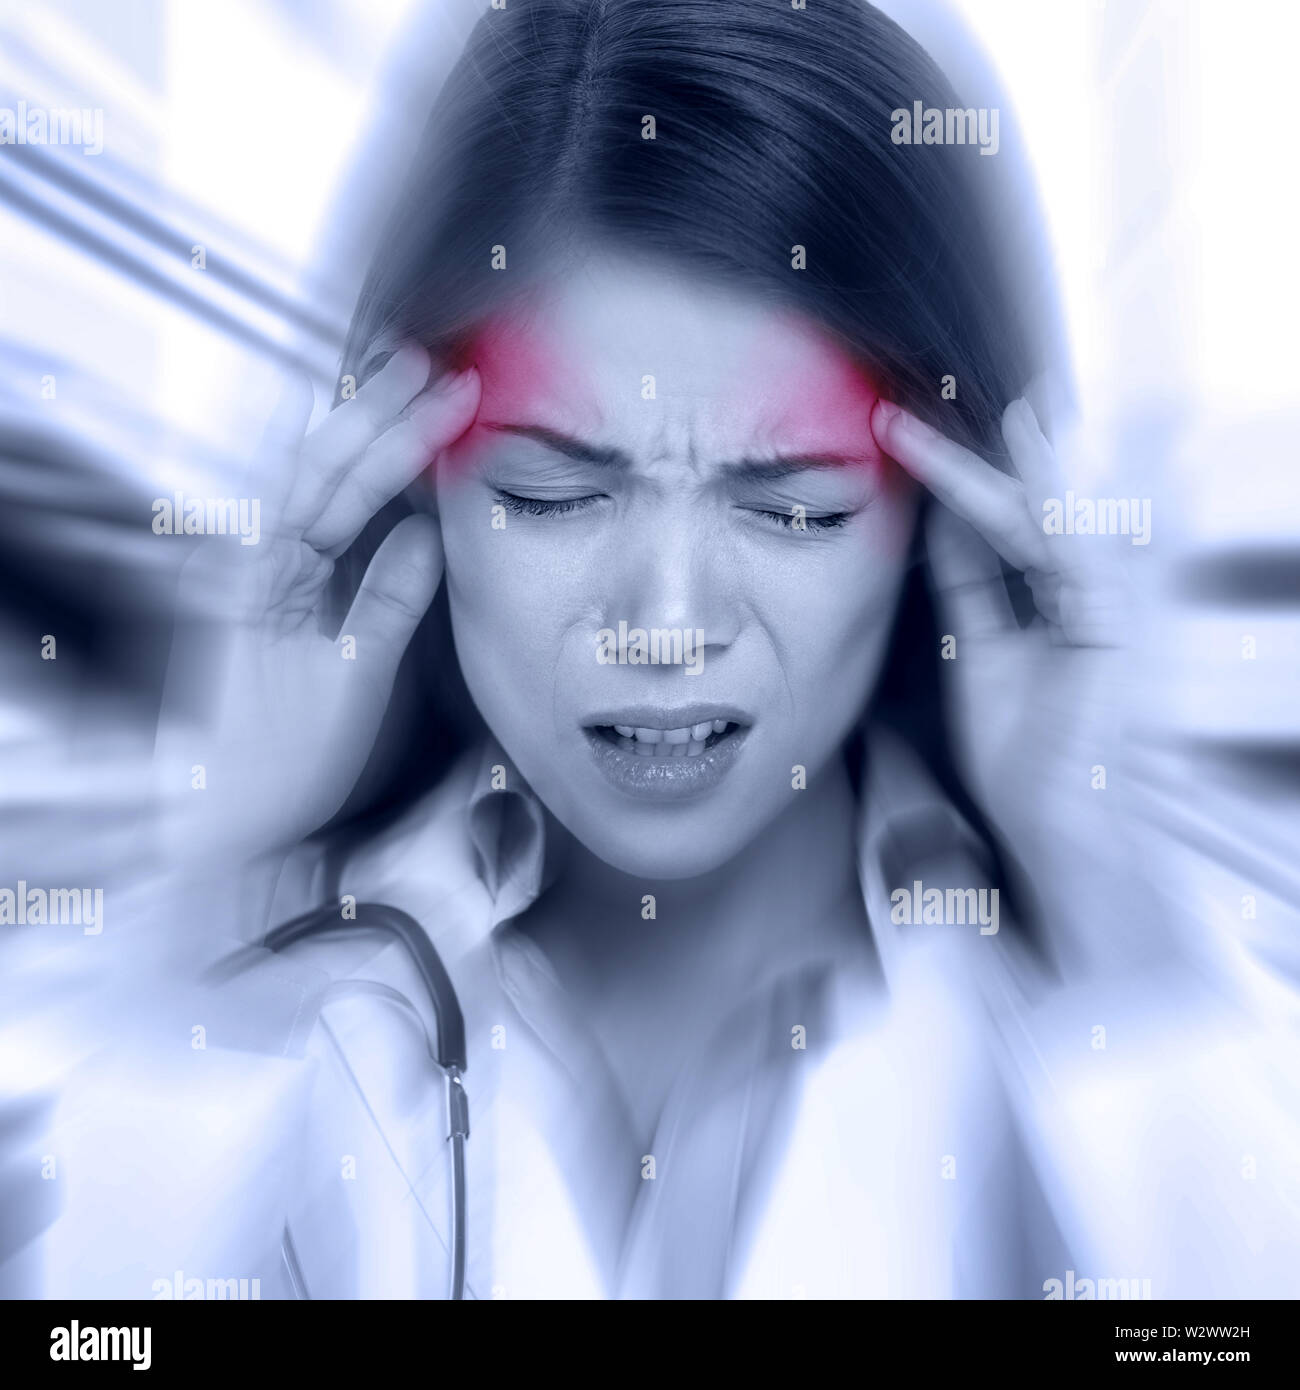 Young woman with a pounding headache or migraine standing clutching her temples with an expression of pain, monochrome image with selective red color to temples and blur effect around her face - Stock Image